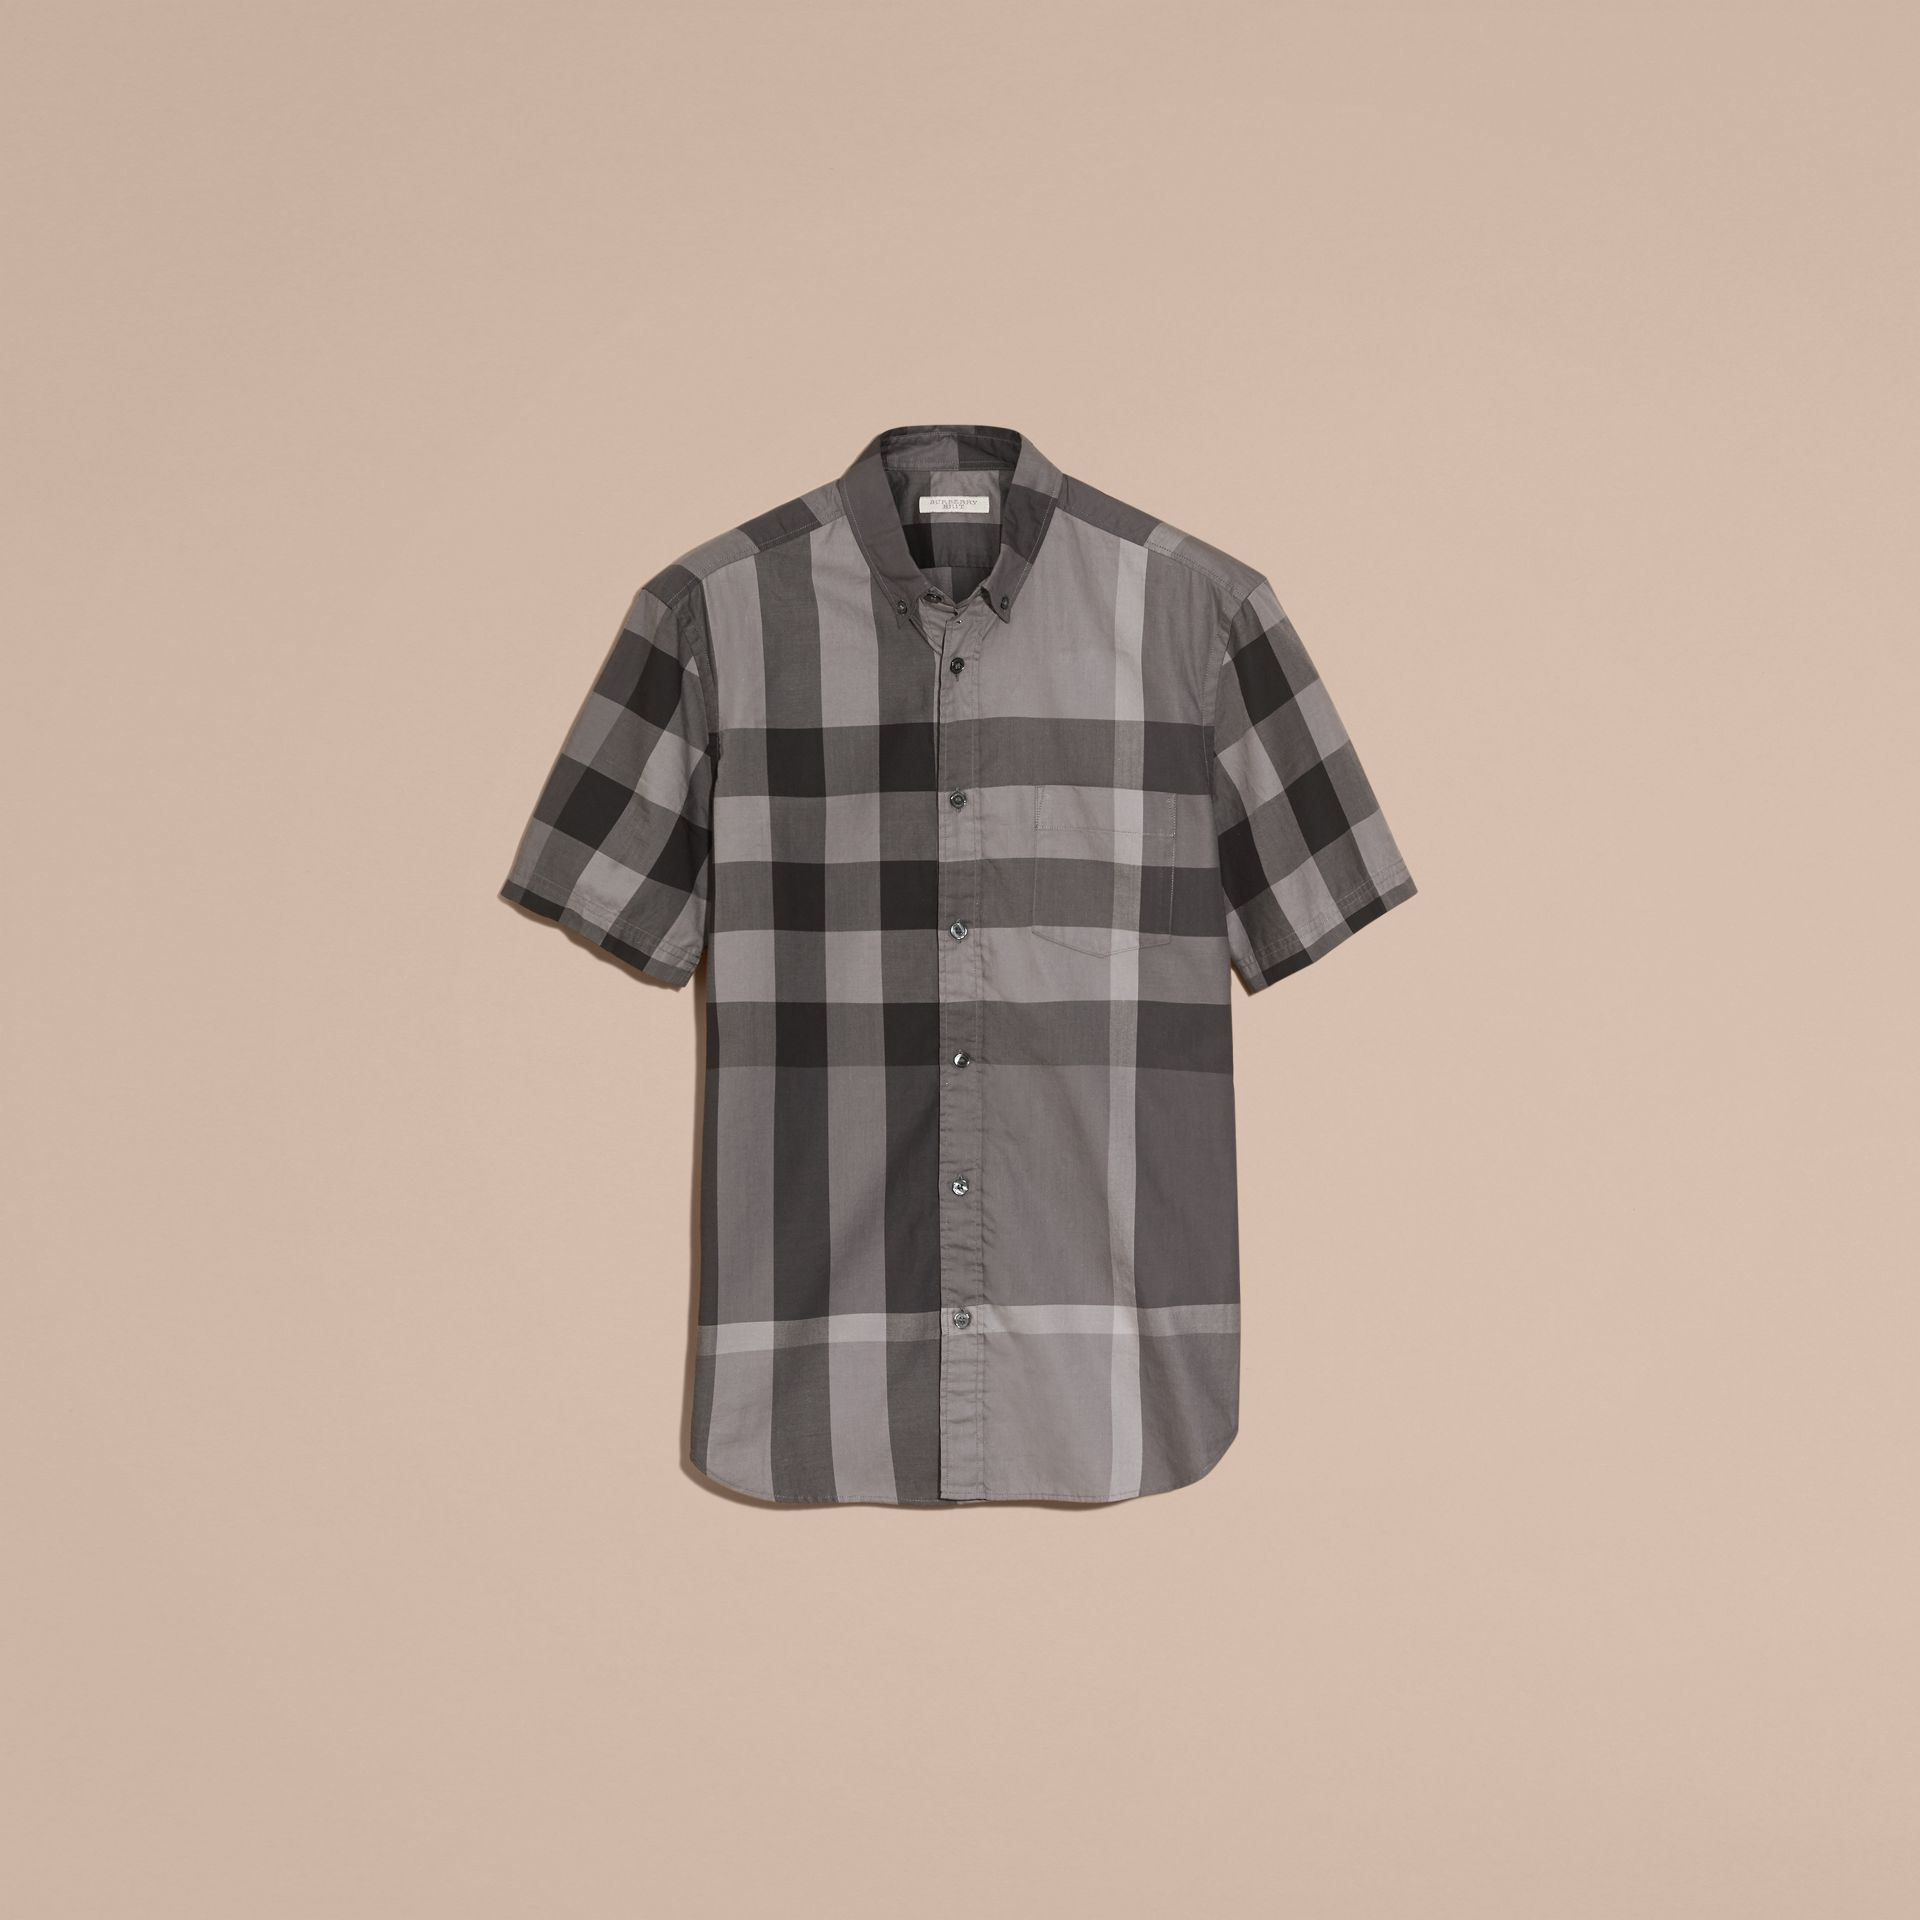 Charcoal Short-sleeved Check Cotton Shirt Charcoal - gallery image 4